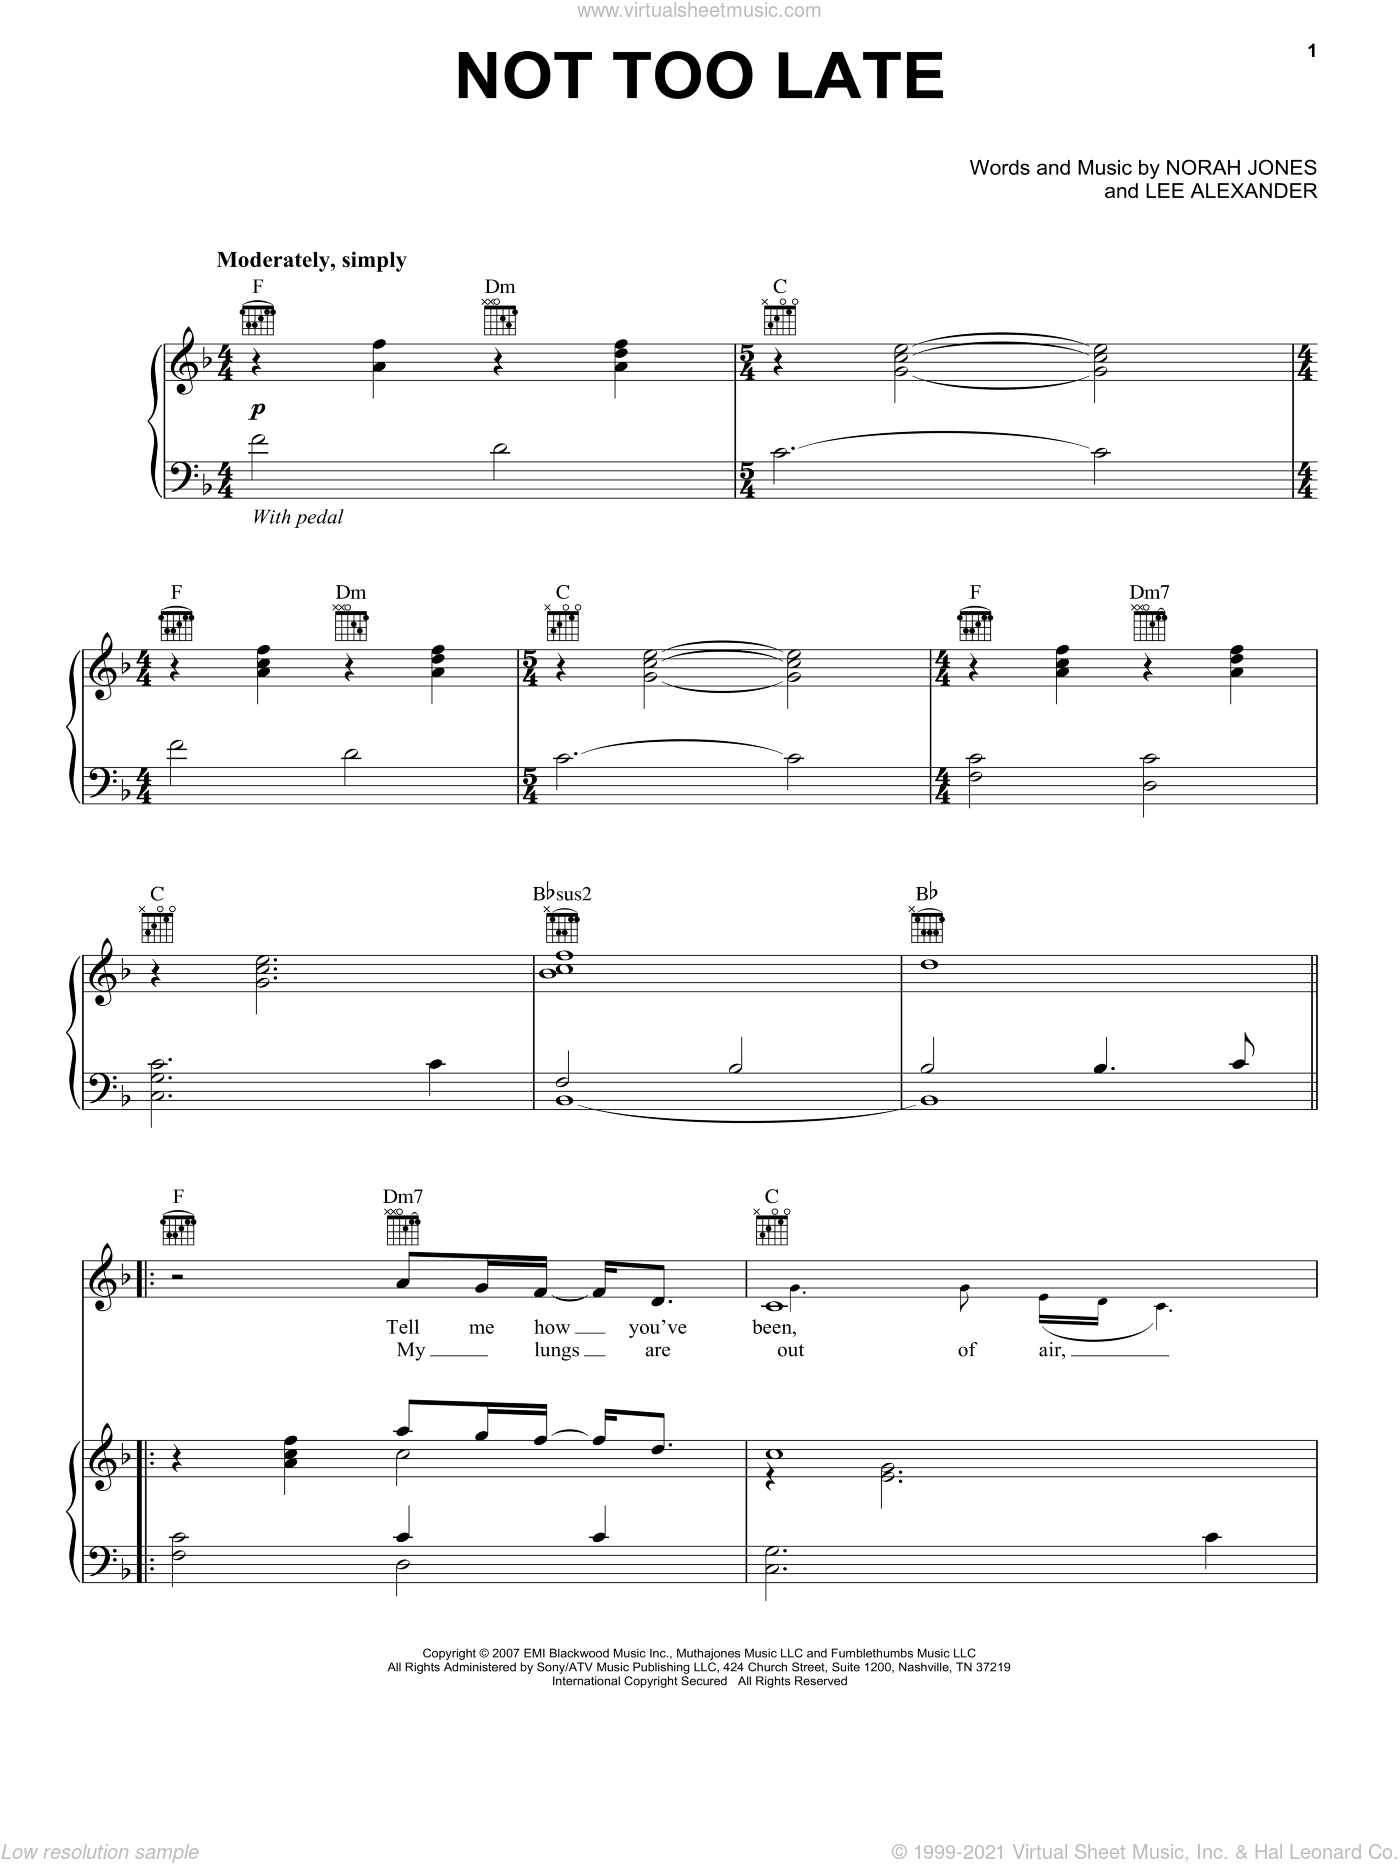 Not Too Late sheet music for voice, piano or guitar by Norah Jones and Lee Alexander, intermediate skill level